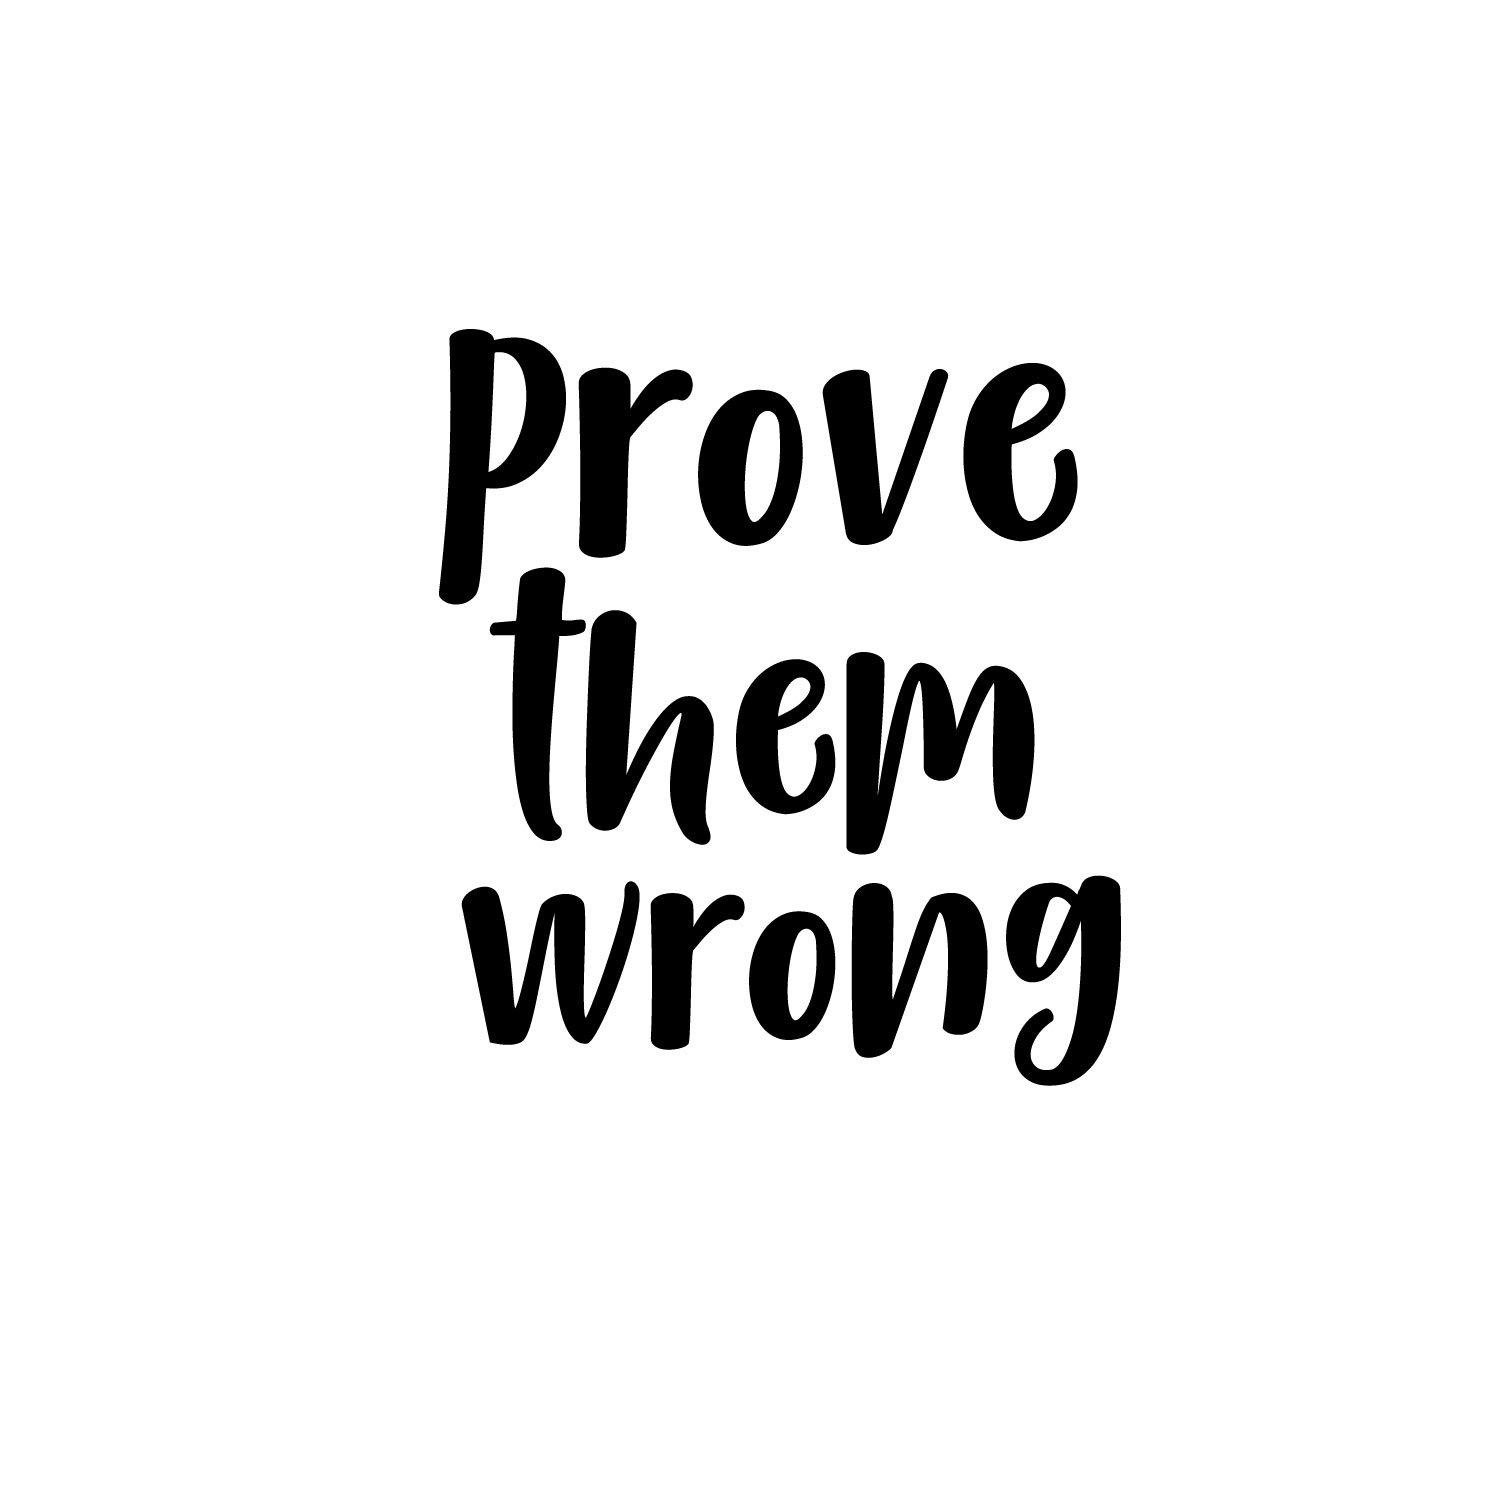 Wall Art Vinyl Decal - Prove Them Wrong - Inspirational Quotes - 25'' x 23'' - Living Room Bedroom Work Office - Home Decor Motivational Sayings Sticker Decals